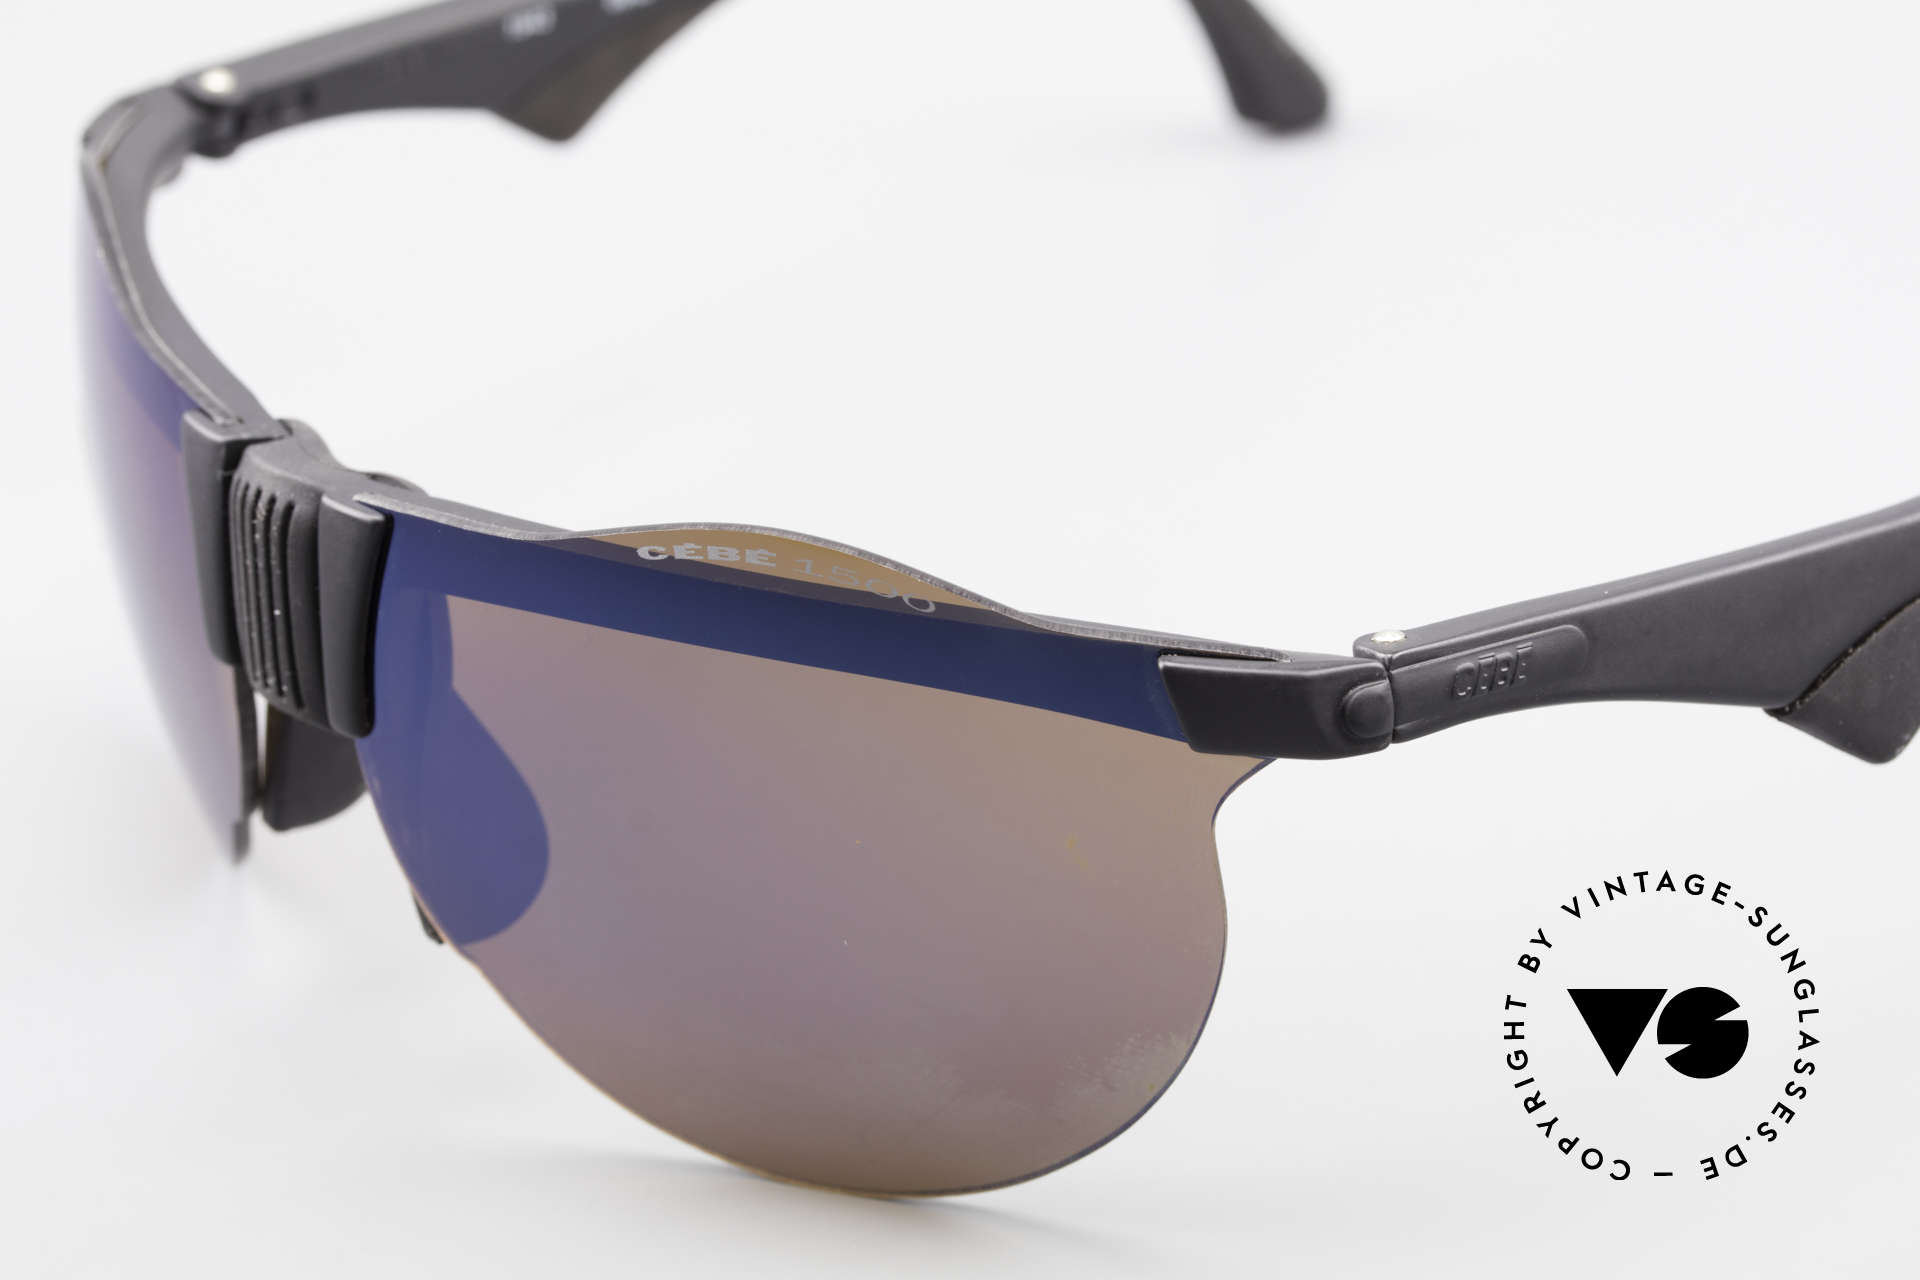 Cebe 1943 Rare Old Racing Sunglasses, never worn (like all our vintage CEBE sports sunglasses), Made for Men and Women